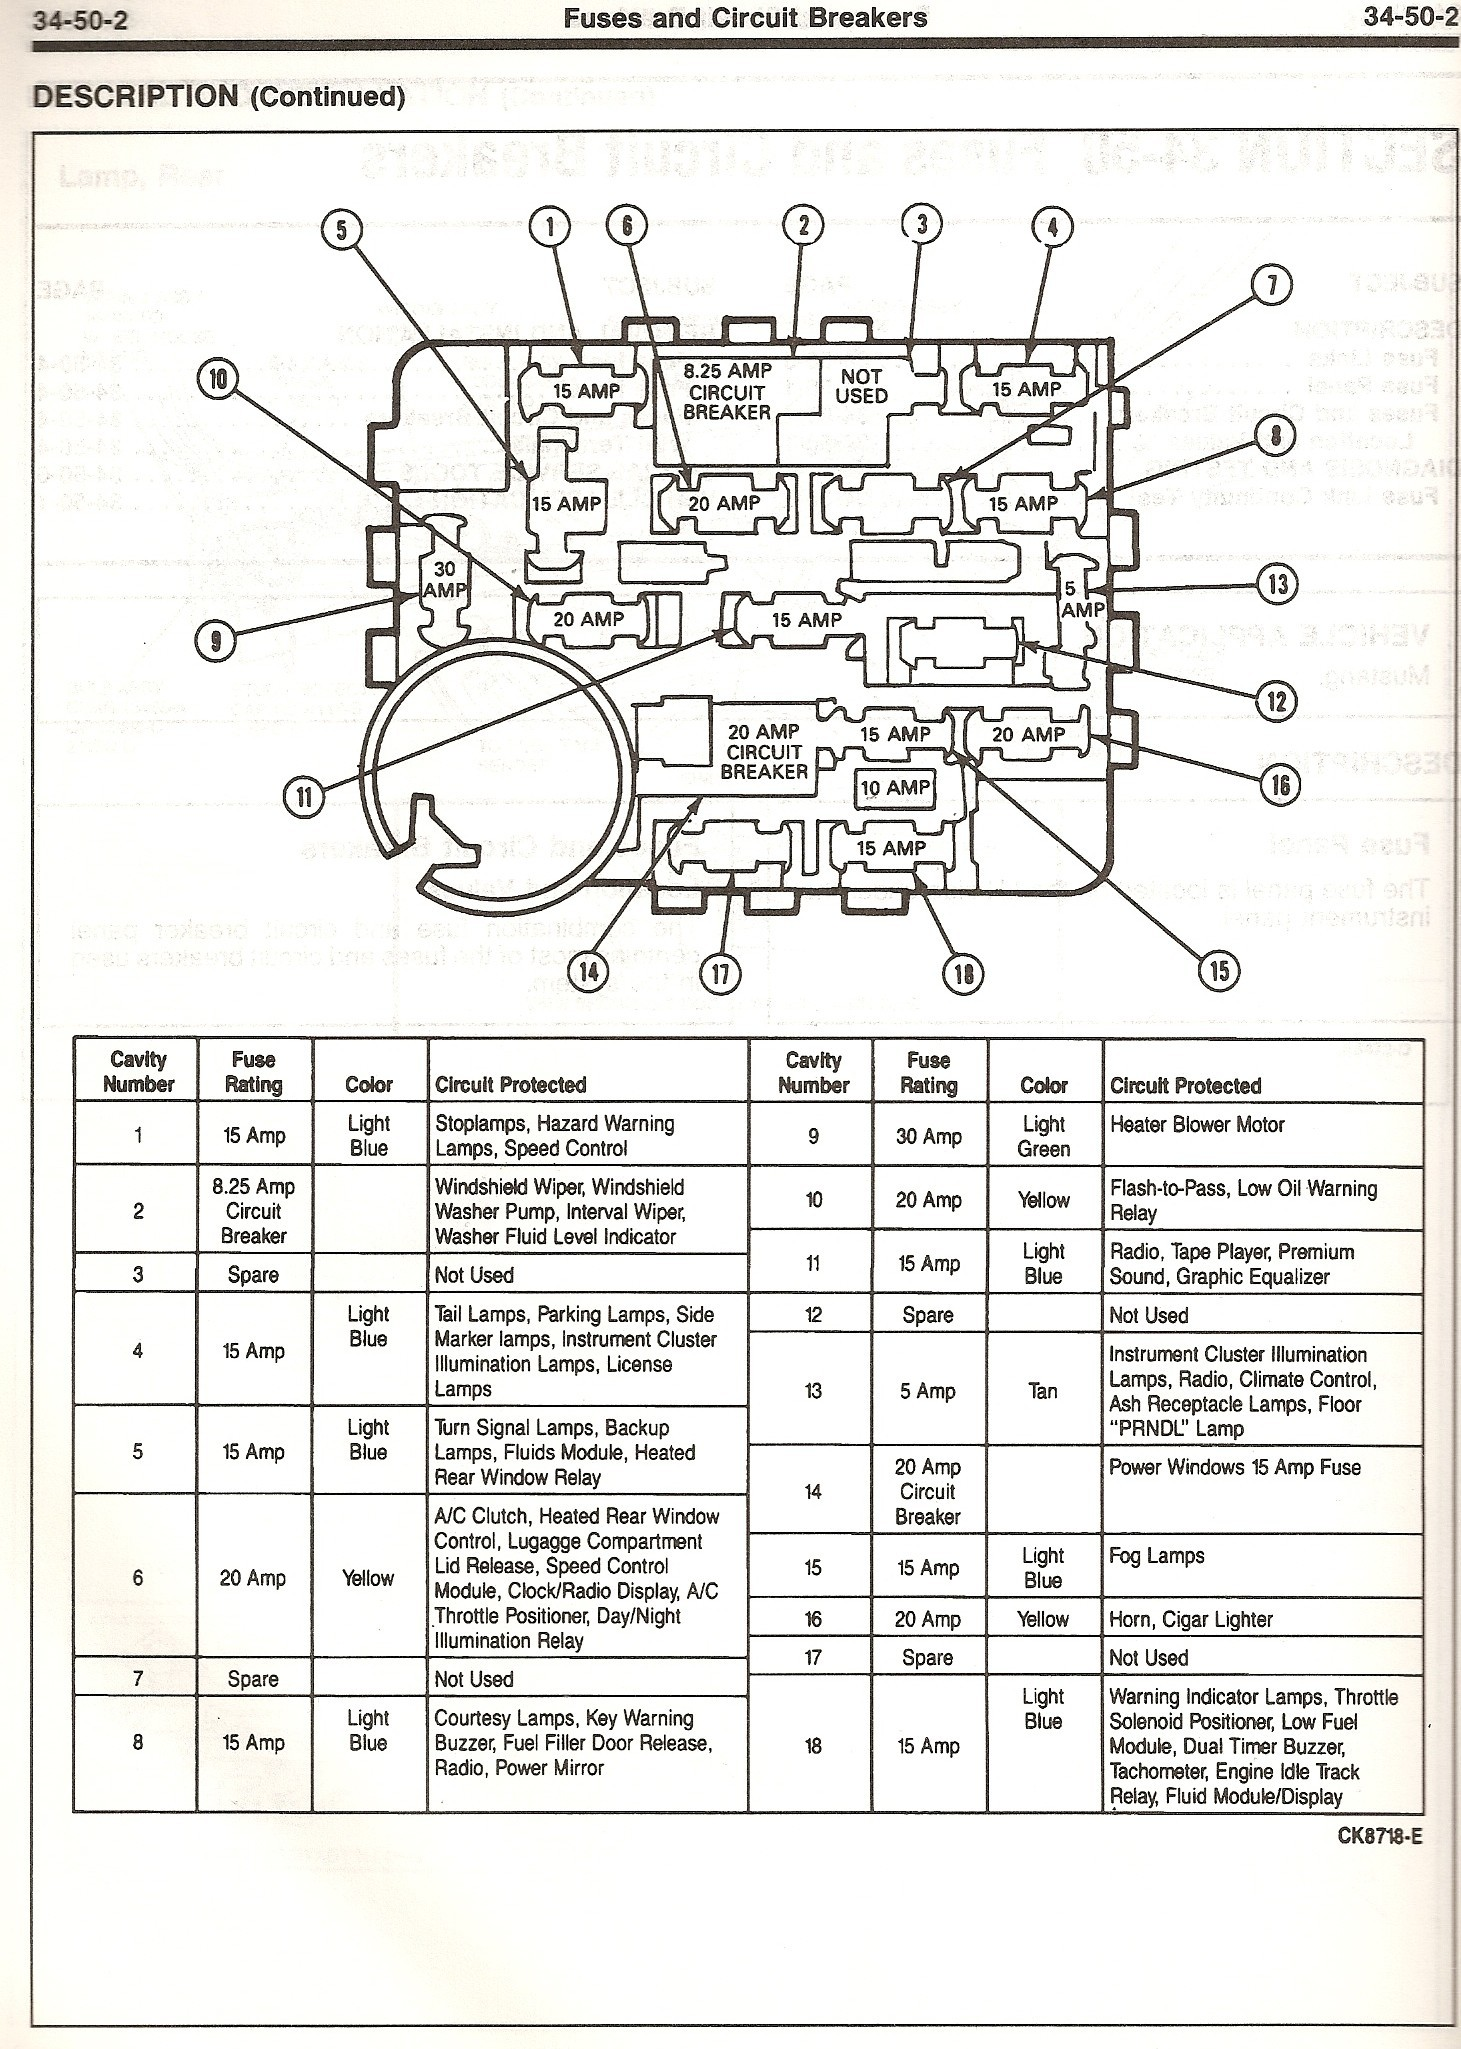 hight resolution of 1992 mercury topaz fuse box diagram wiring schematic wiringwrg 3124 1986 tempo fuse box 1992